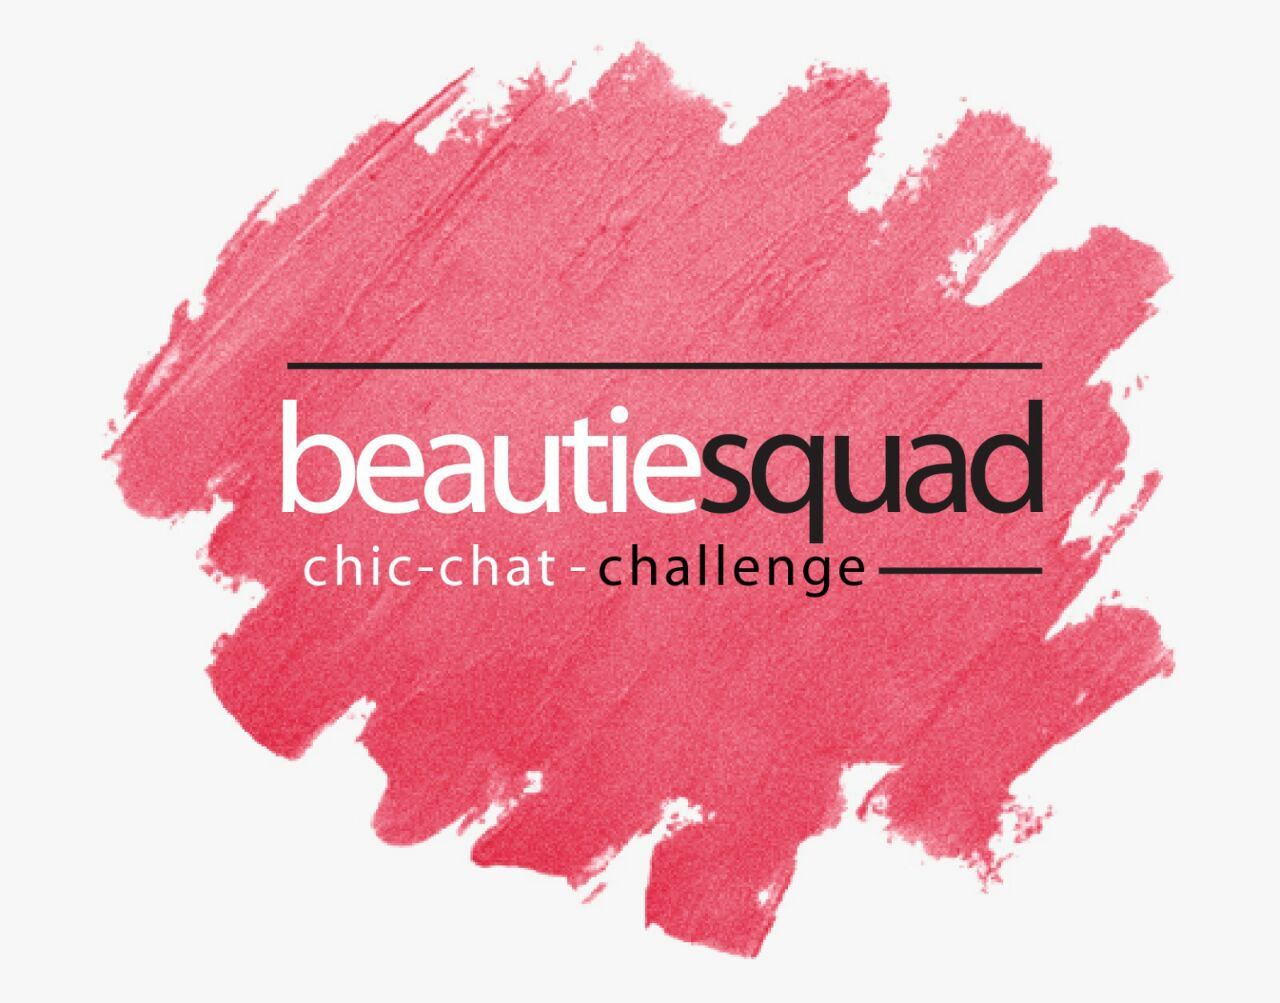 I'm part of BeautieSquad